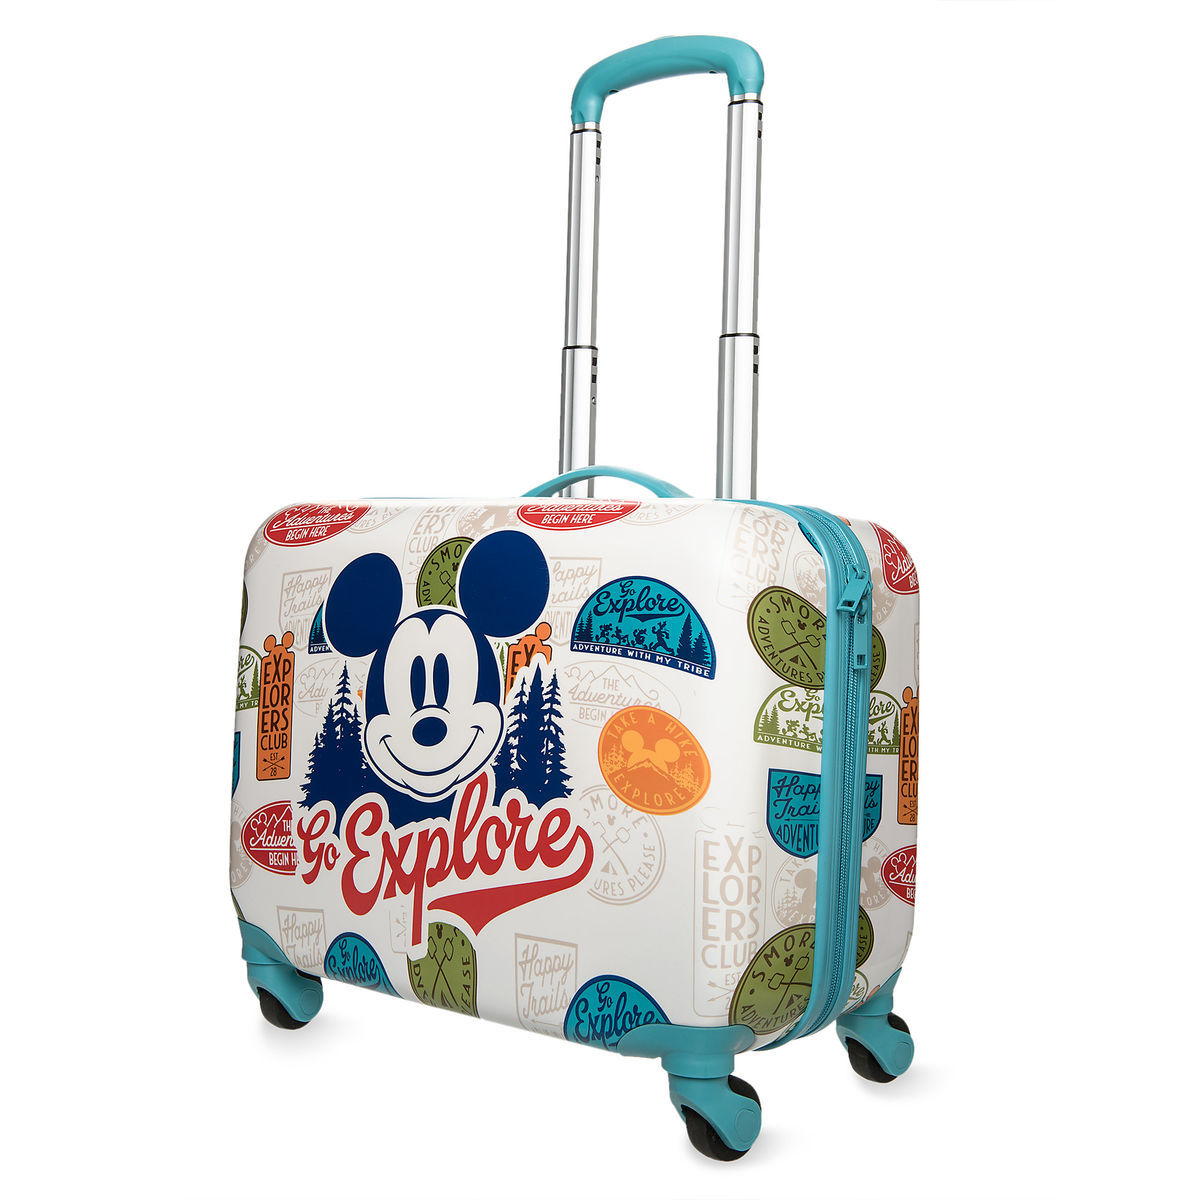 Product Image of Mickey Mouse   Go Explore   Rolling Luggage ... efea69de9ef00